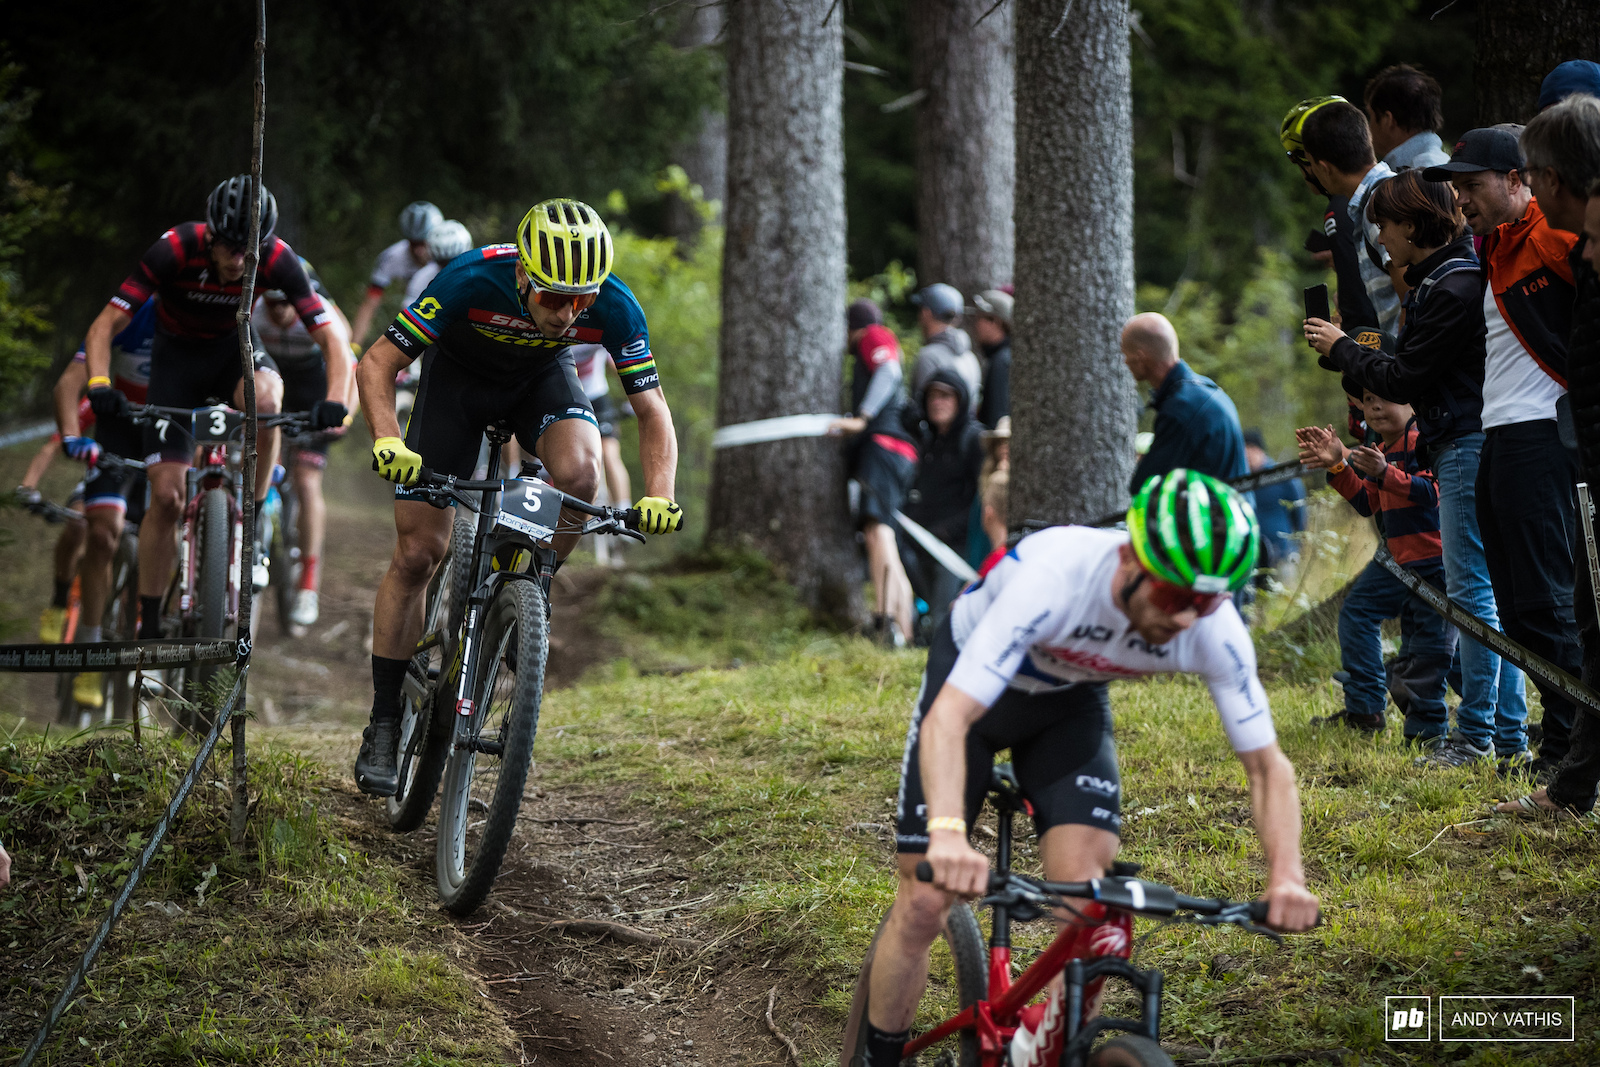 Nino Schurter matches his number board with more fight for Sunday.